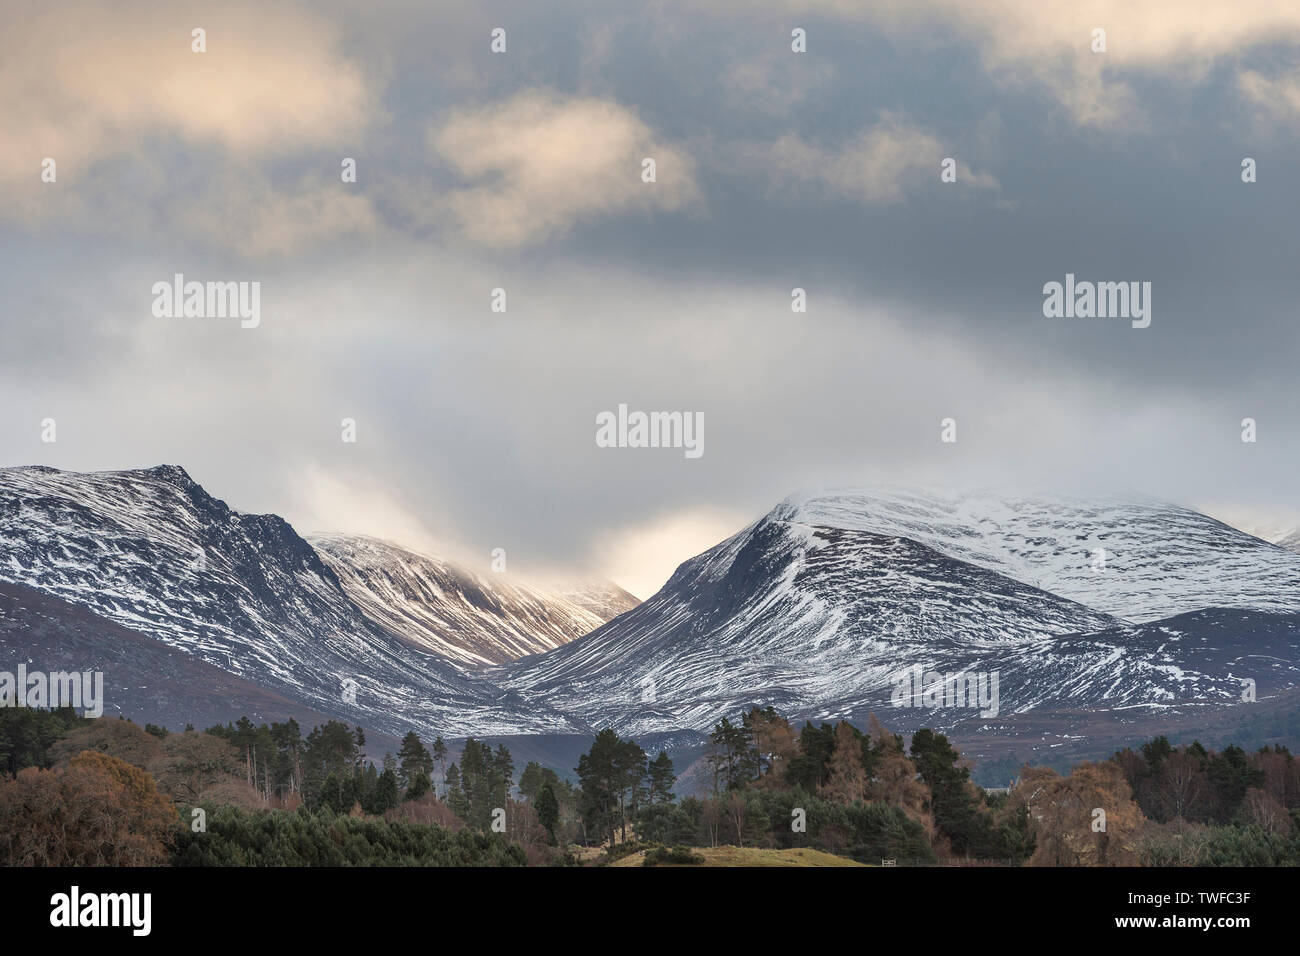 Lairig Ghru mountain pass in the Cairngorms National Park of Scotland. - Stock Image